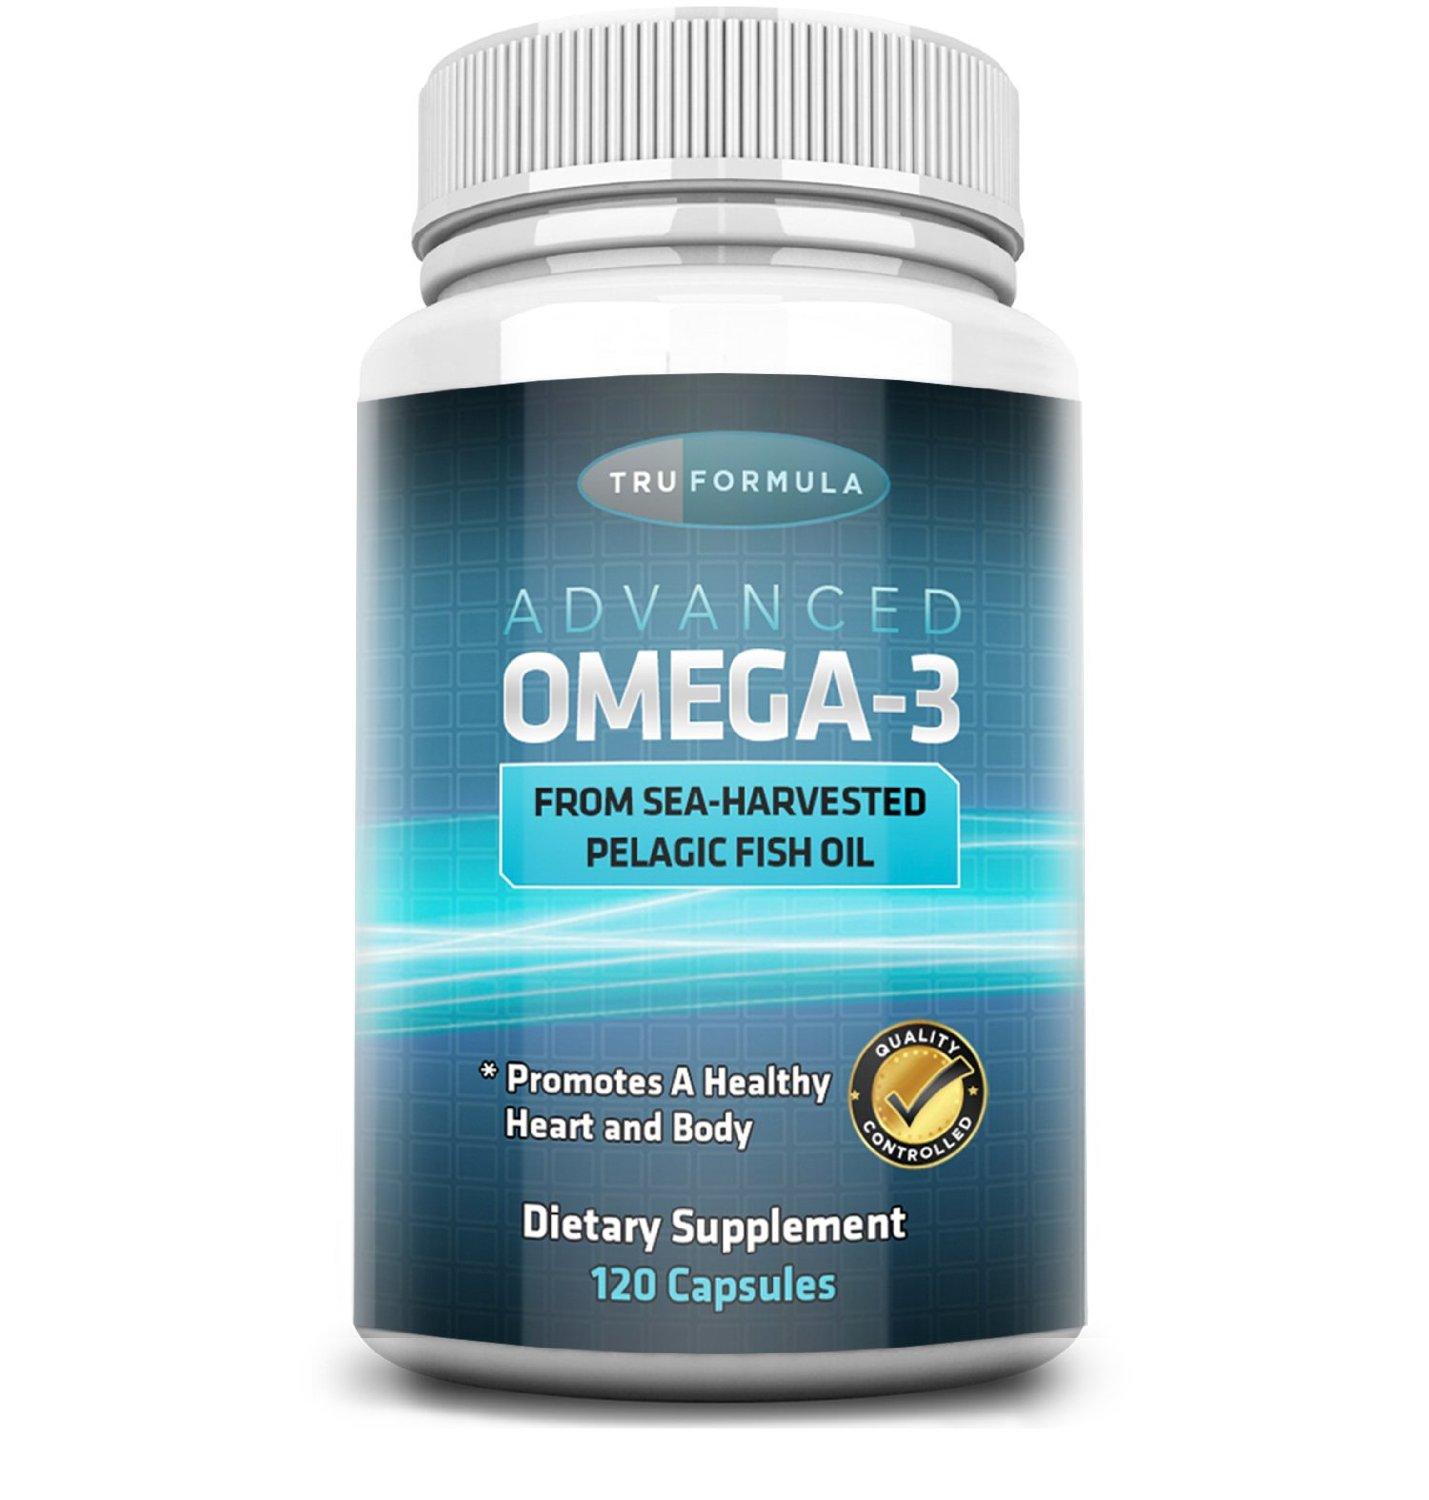 Advanced Omega 3 - 100% Pure Sea Harvested Pelagic Fish Oil + Natural Essential Fatty Acids -Promotes Healthy Cardiovascular System, Joint Flexibility, Eye Health & Proper Nerve Function -4 Months Supply 120 Soft Gels, Easily Swallowed & Digested!